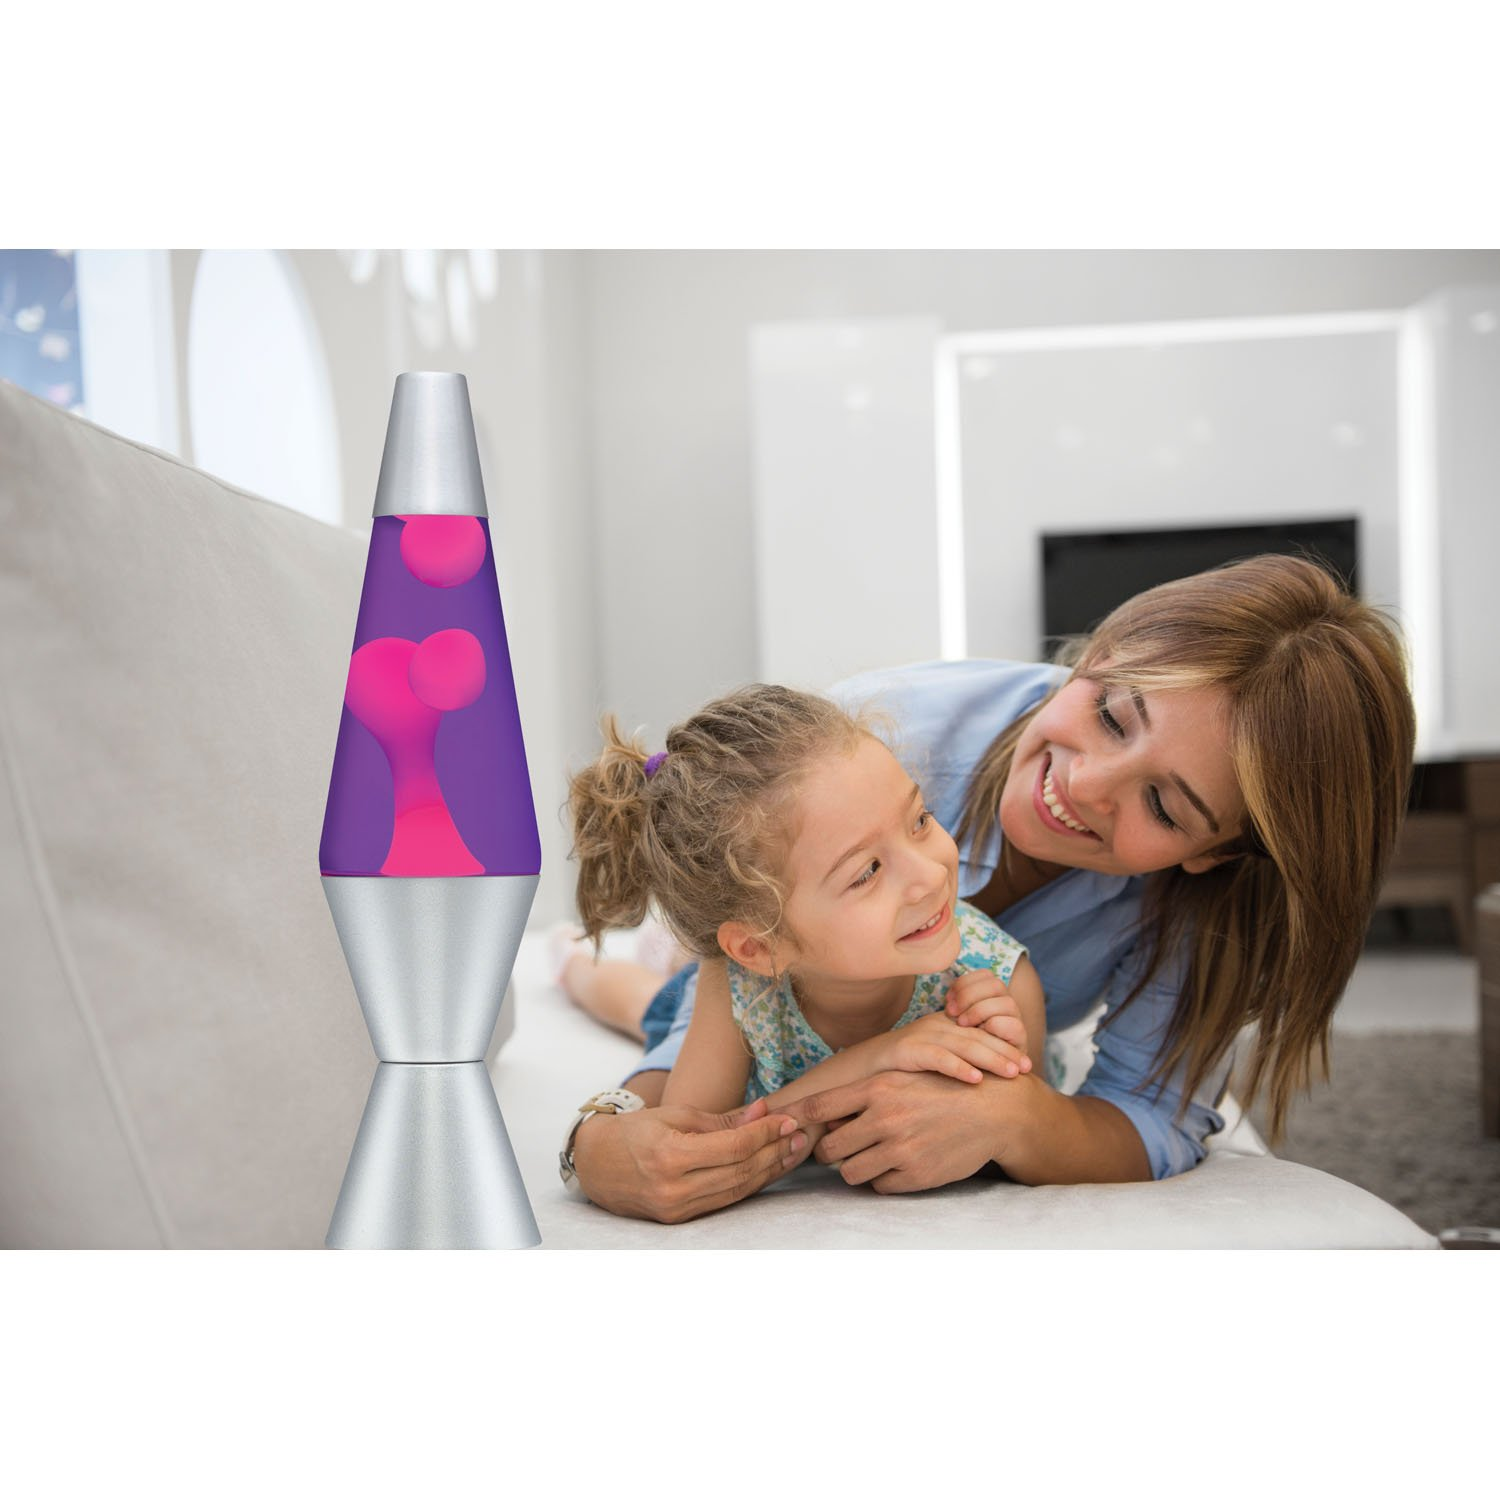 Lava Lamp Classic 14.5 Inch Purple Pink Relaxing Soft Light 25 Watt Light Bulb